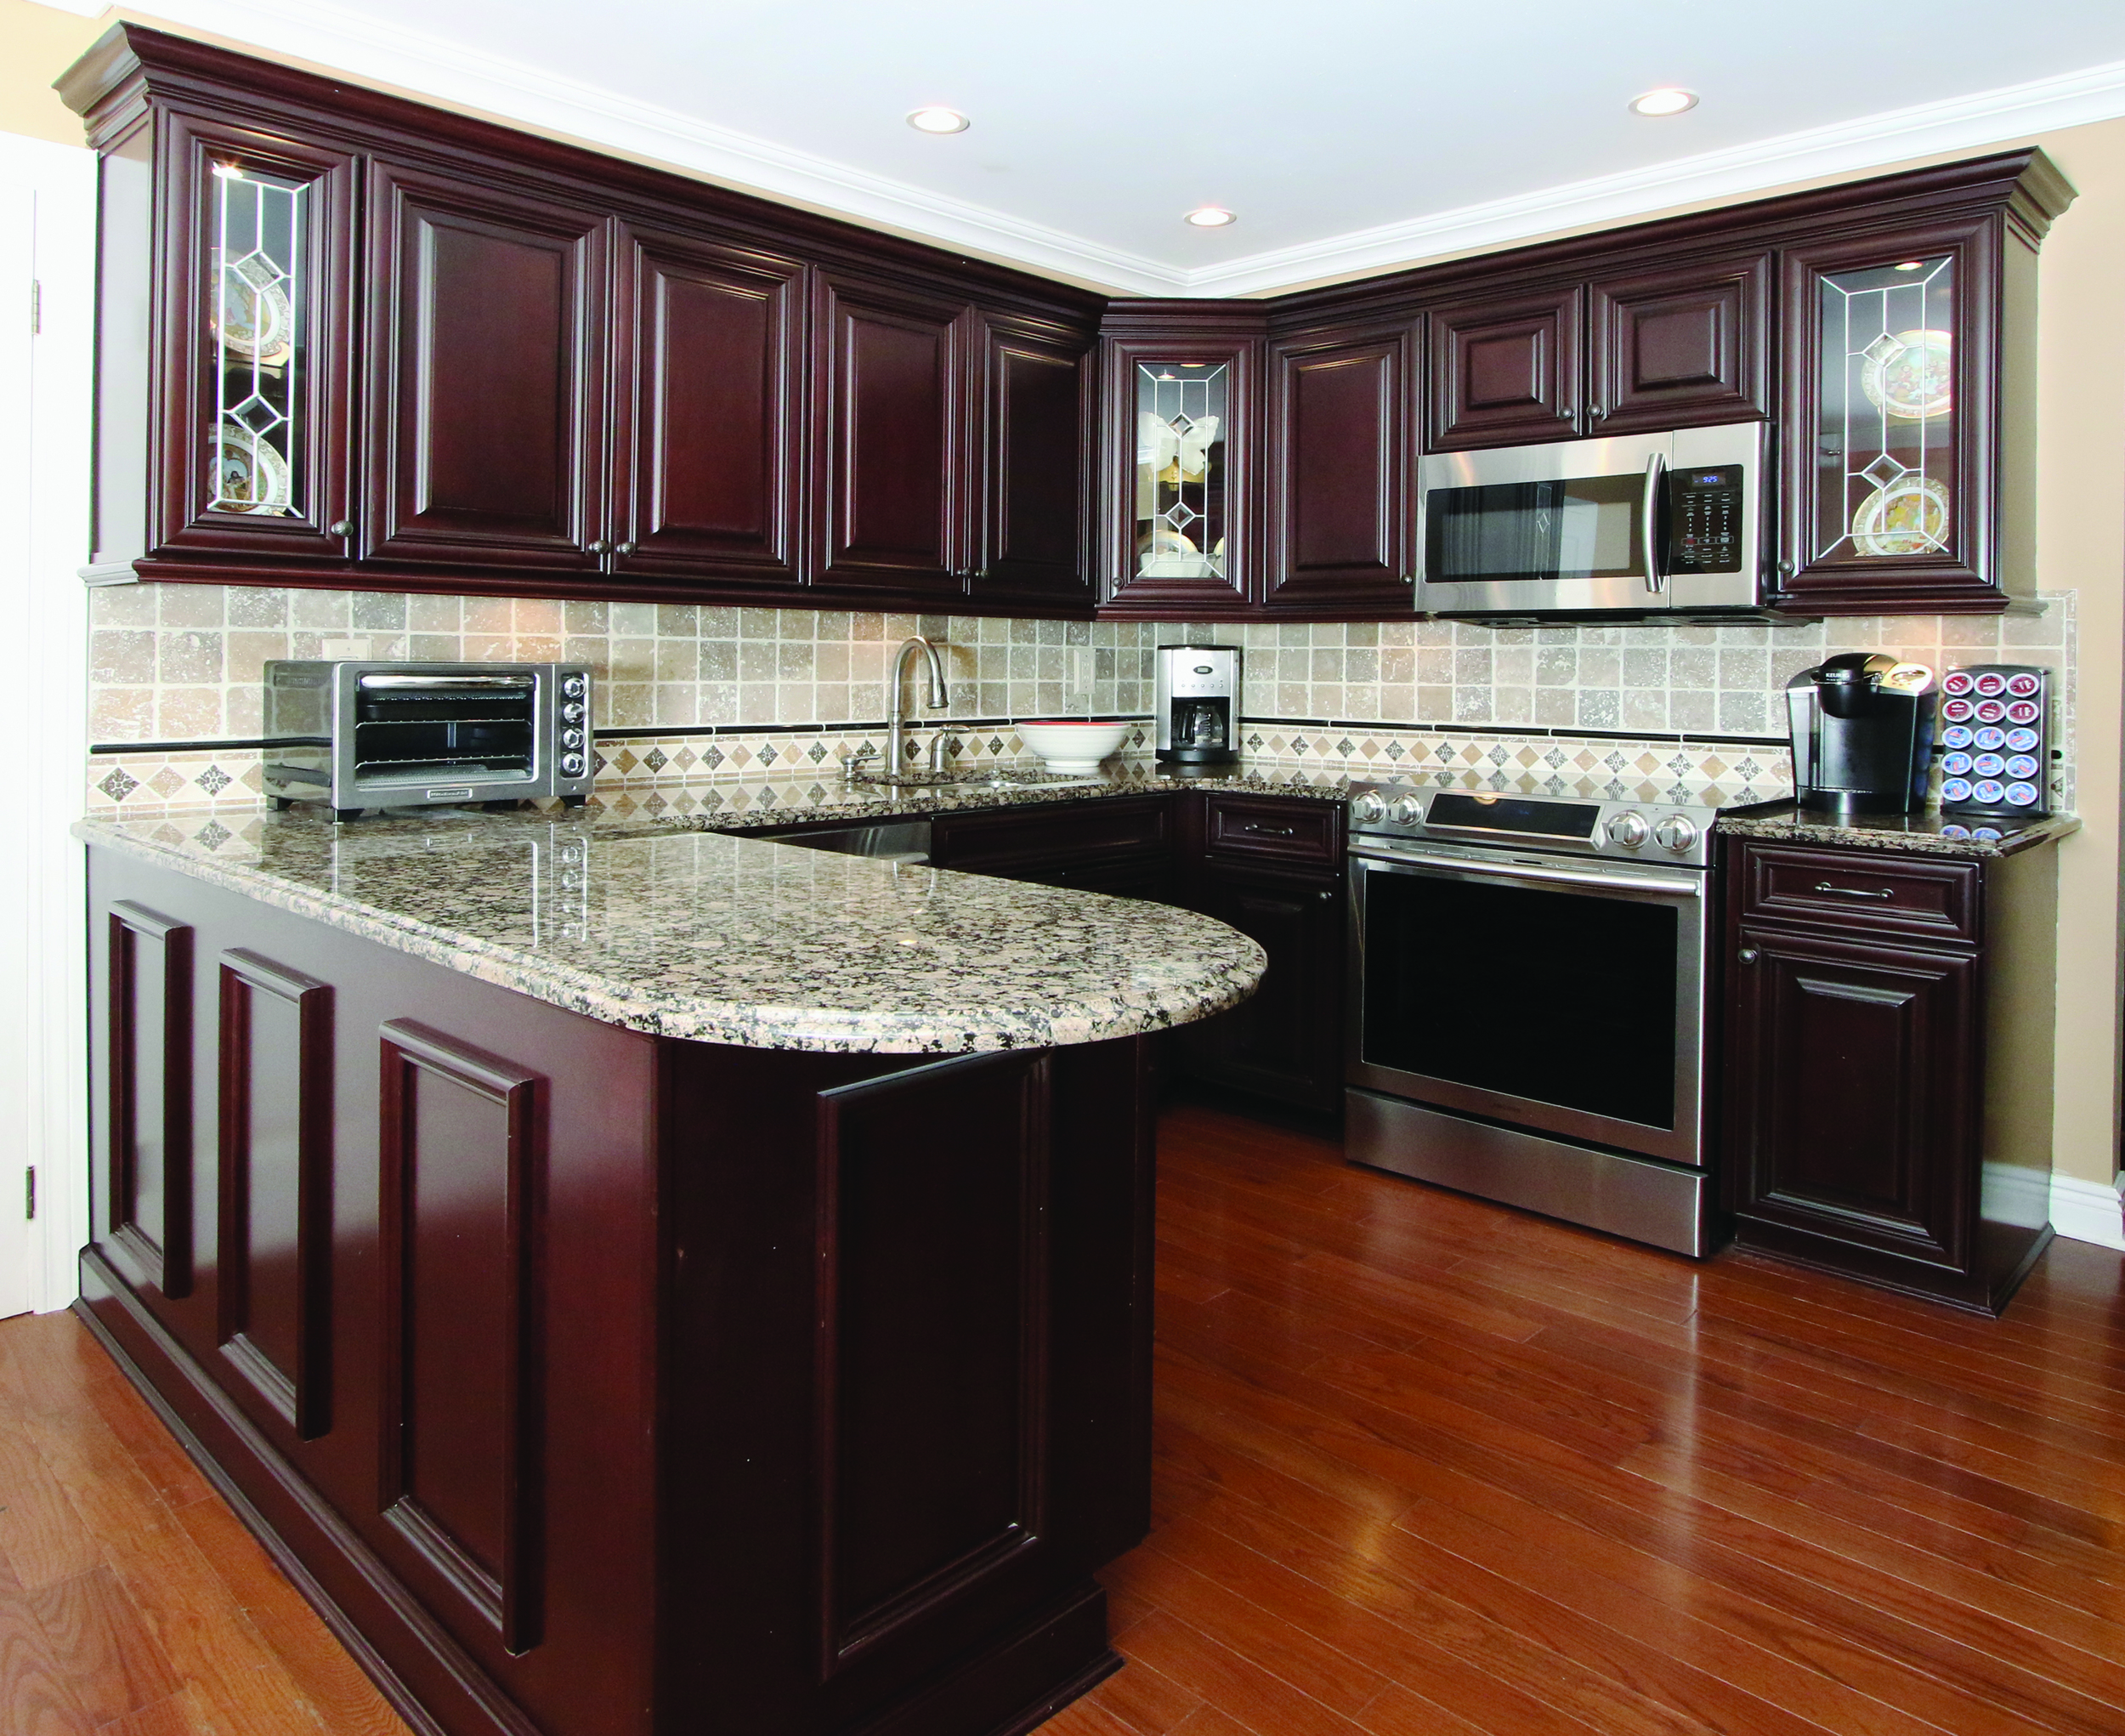 Custom kitchen cabinets provide more ­storage and an updated feel.